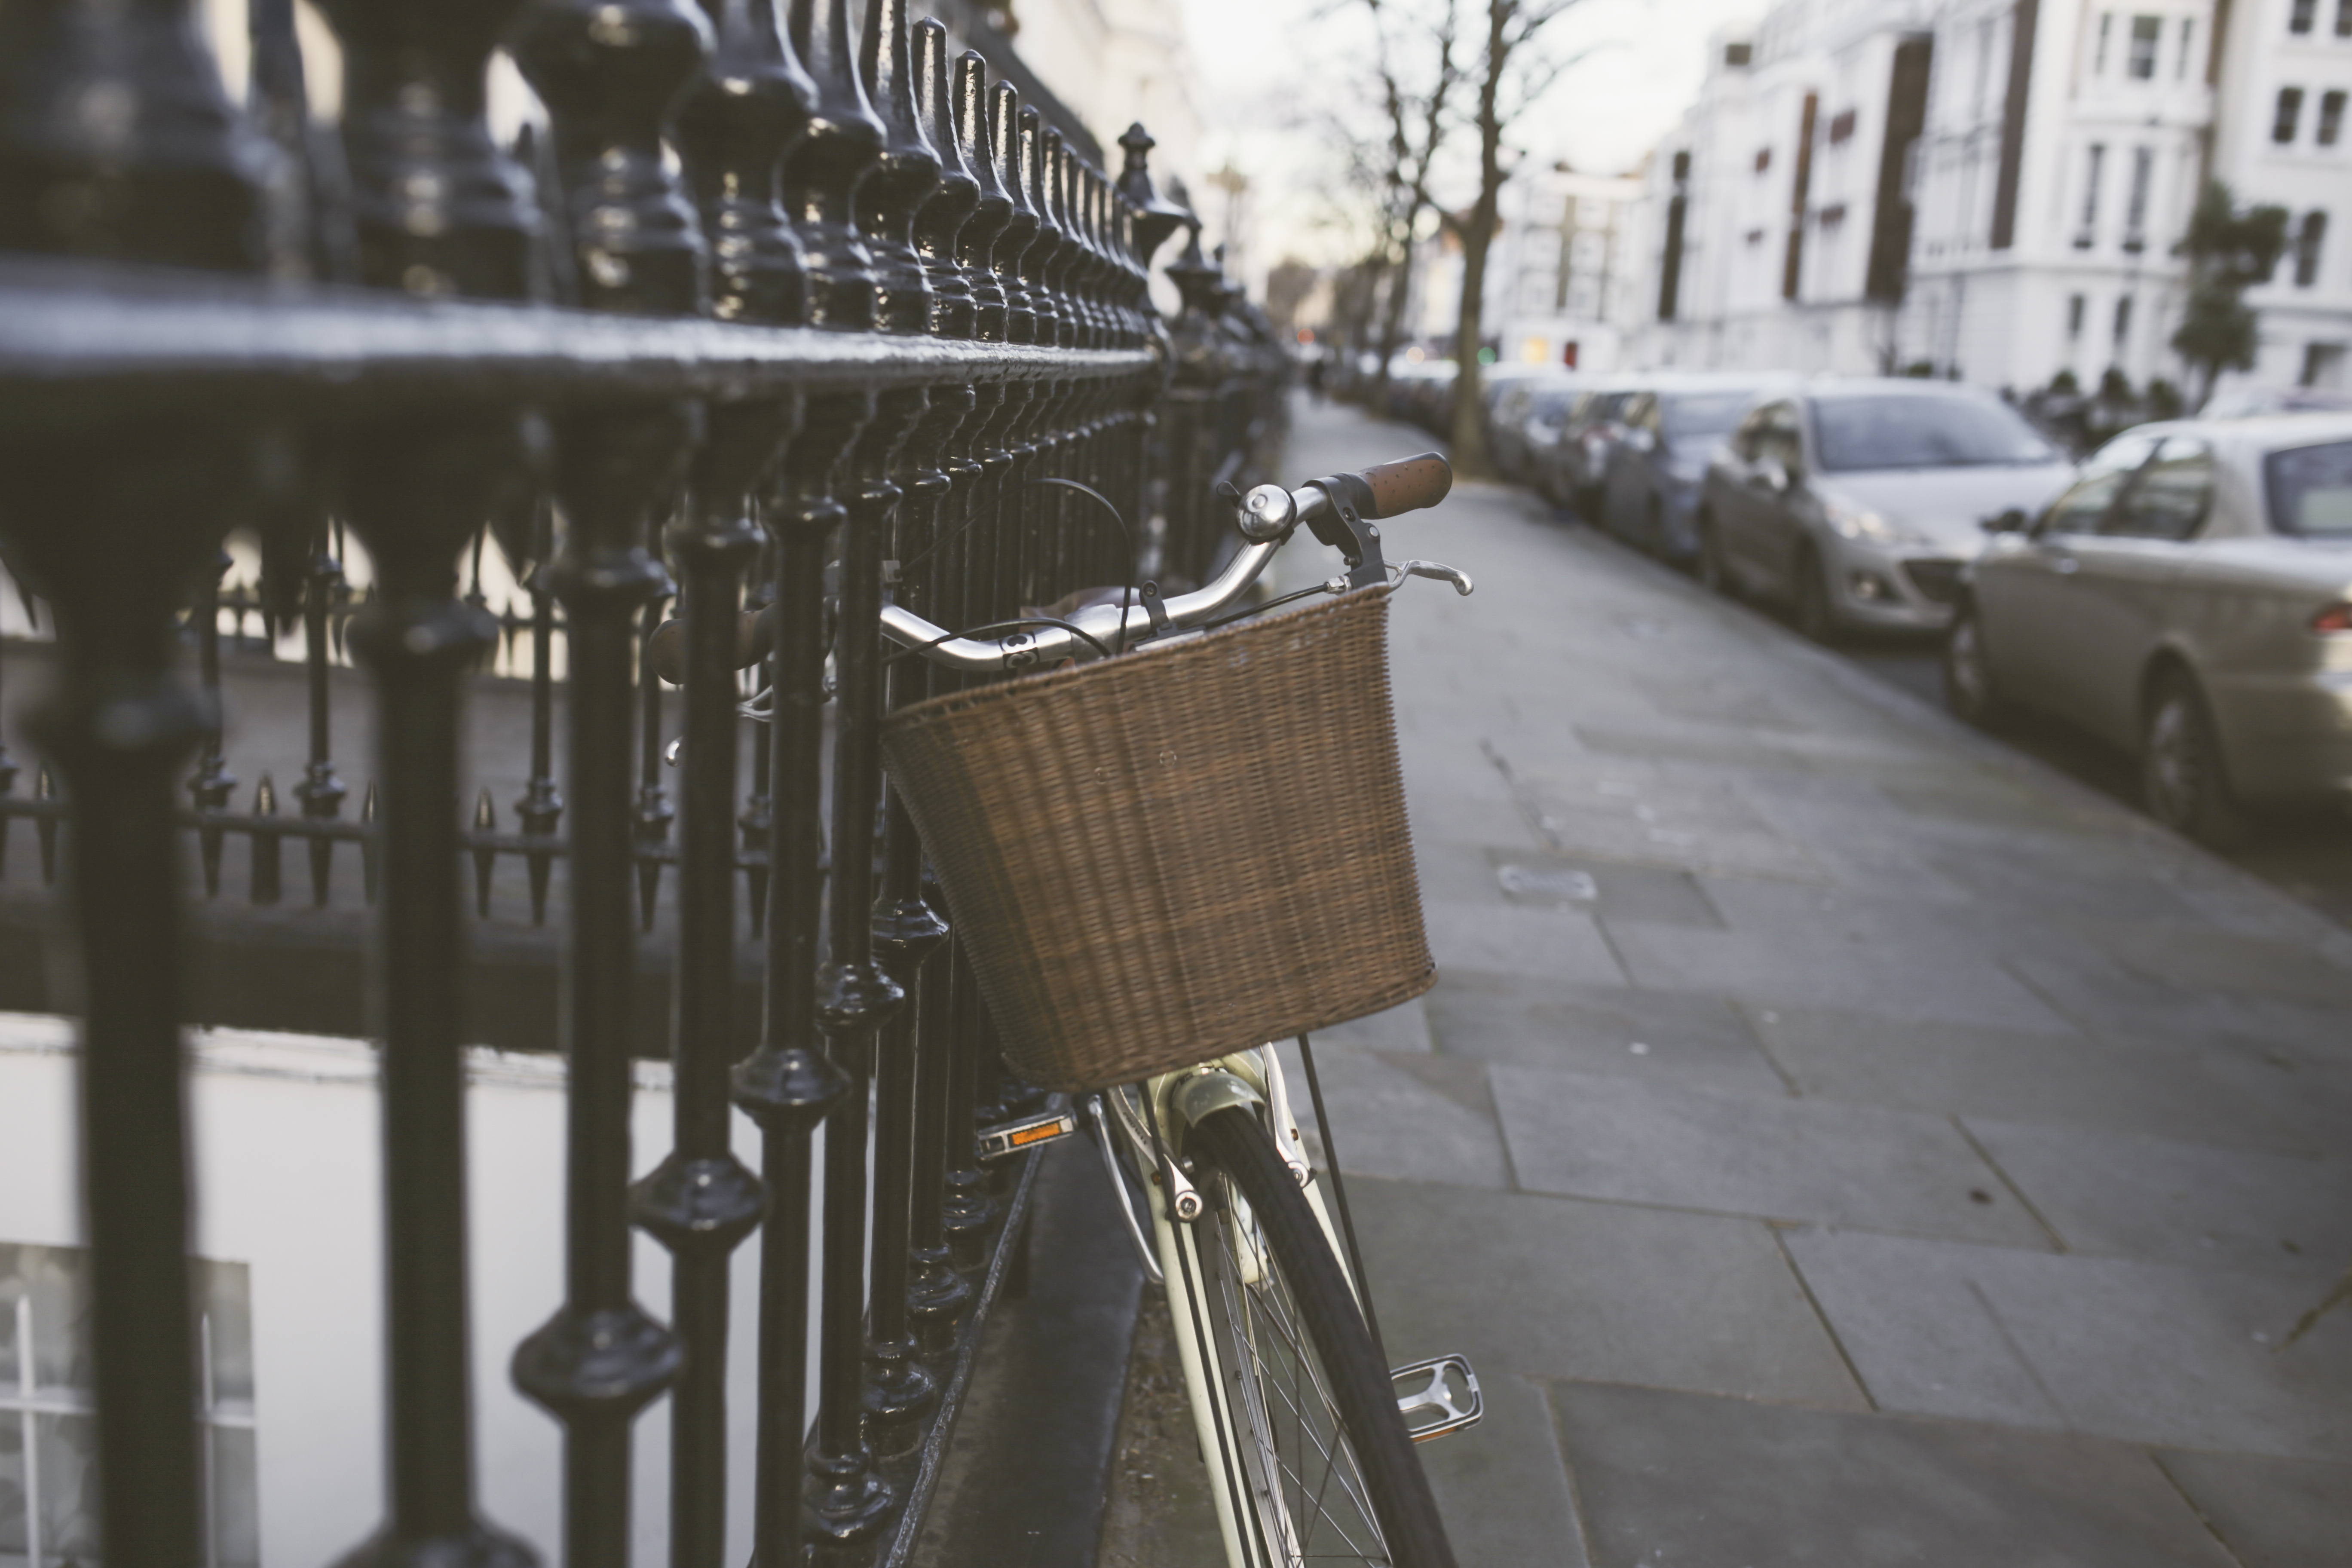 Cycle, Grill, Metal, Old, Road, HQ Photo